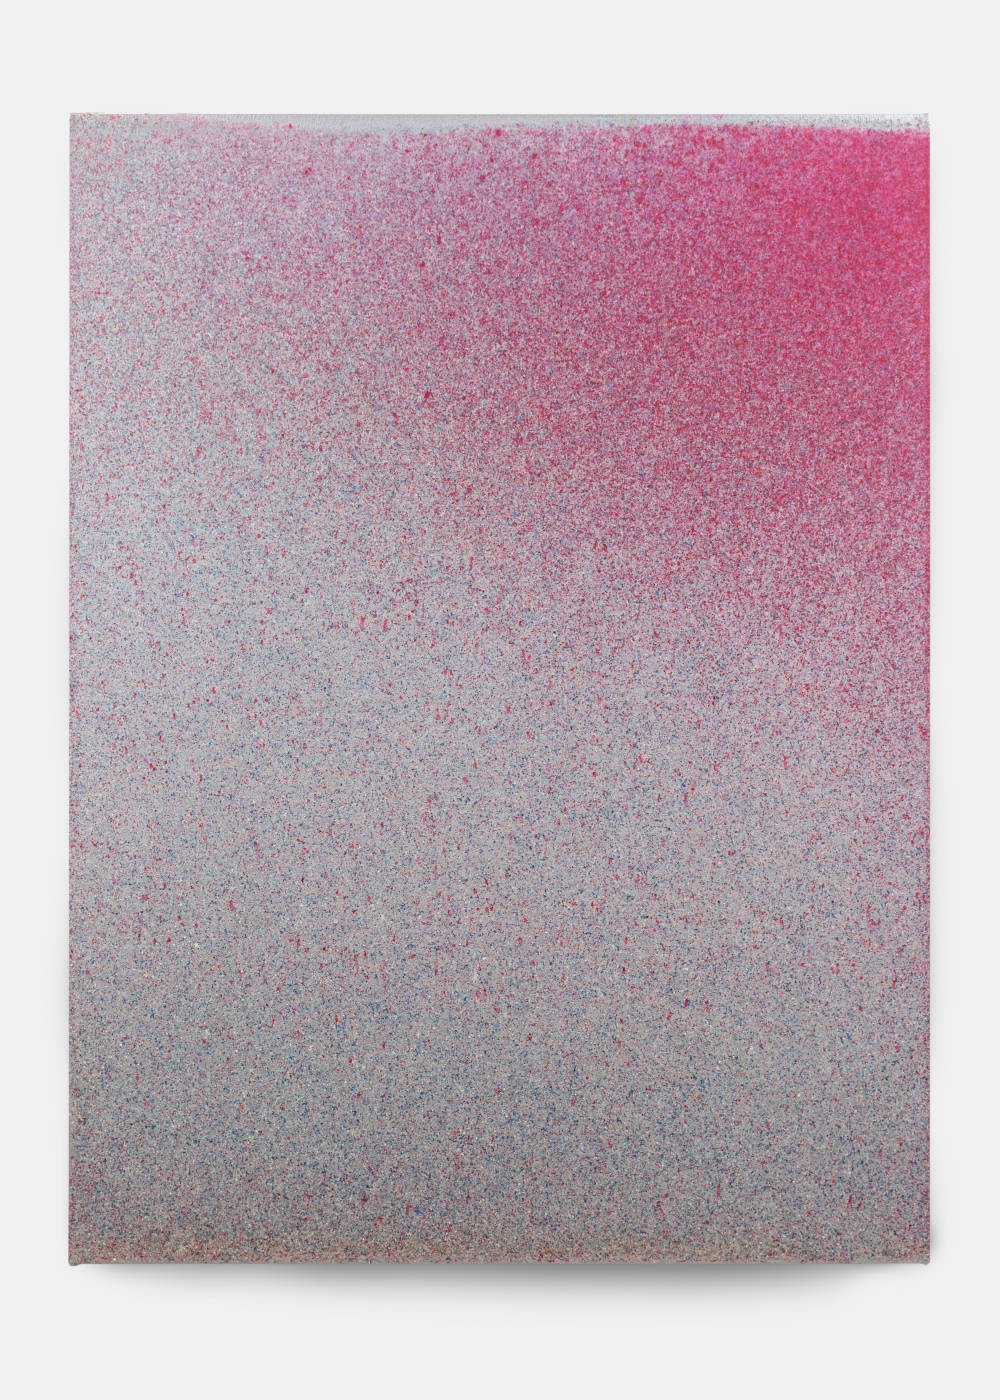 John Knuth (b. 1978), Soundrise, 2019. Acrylic/Flyspeck on canvas 48 x 36 inches